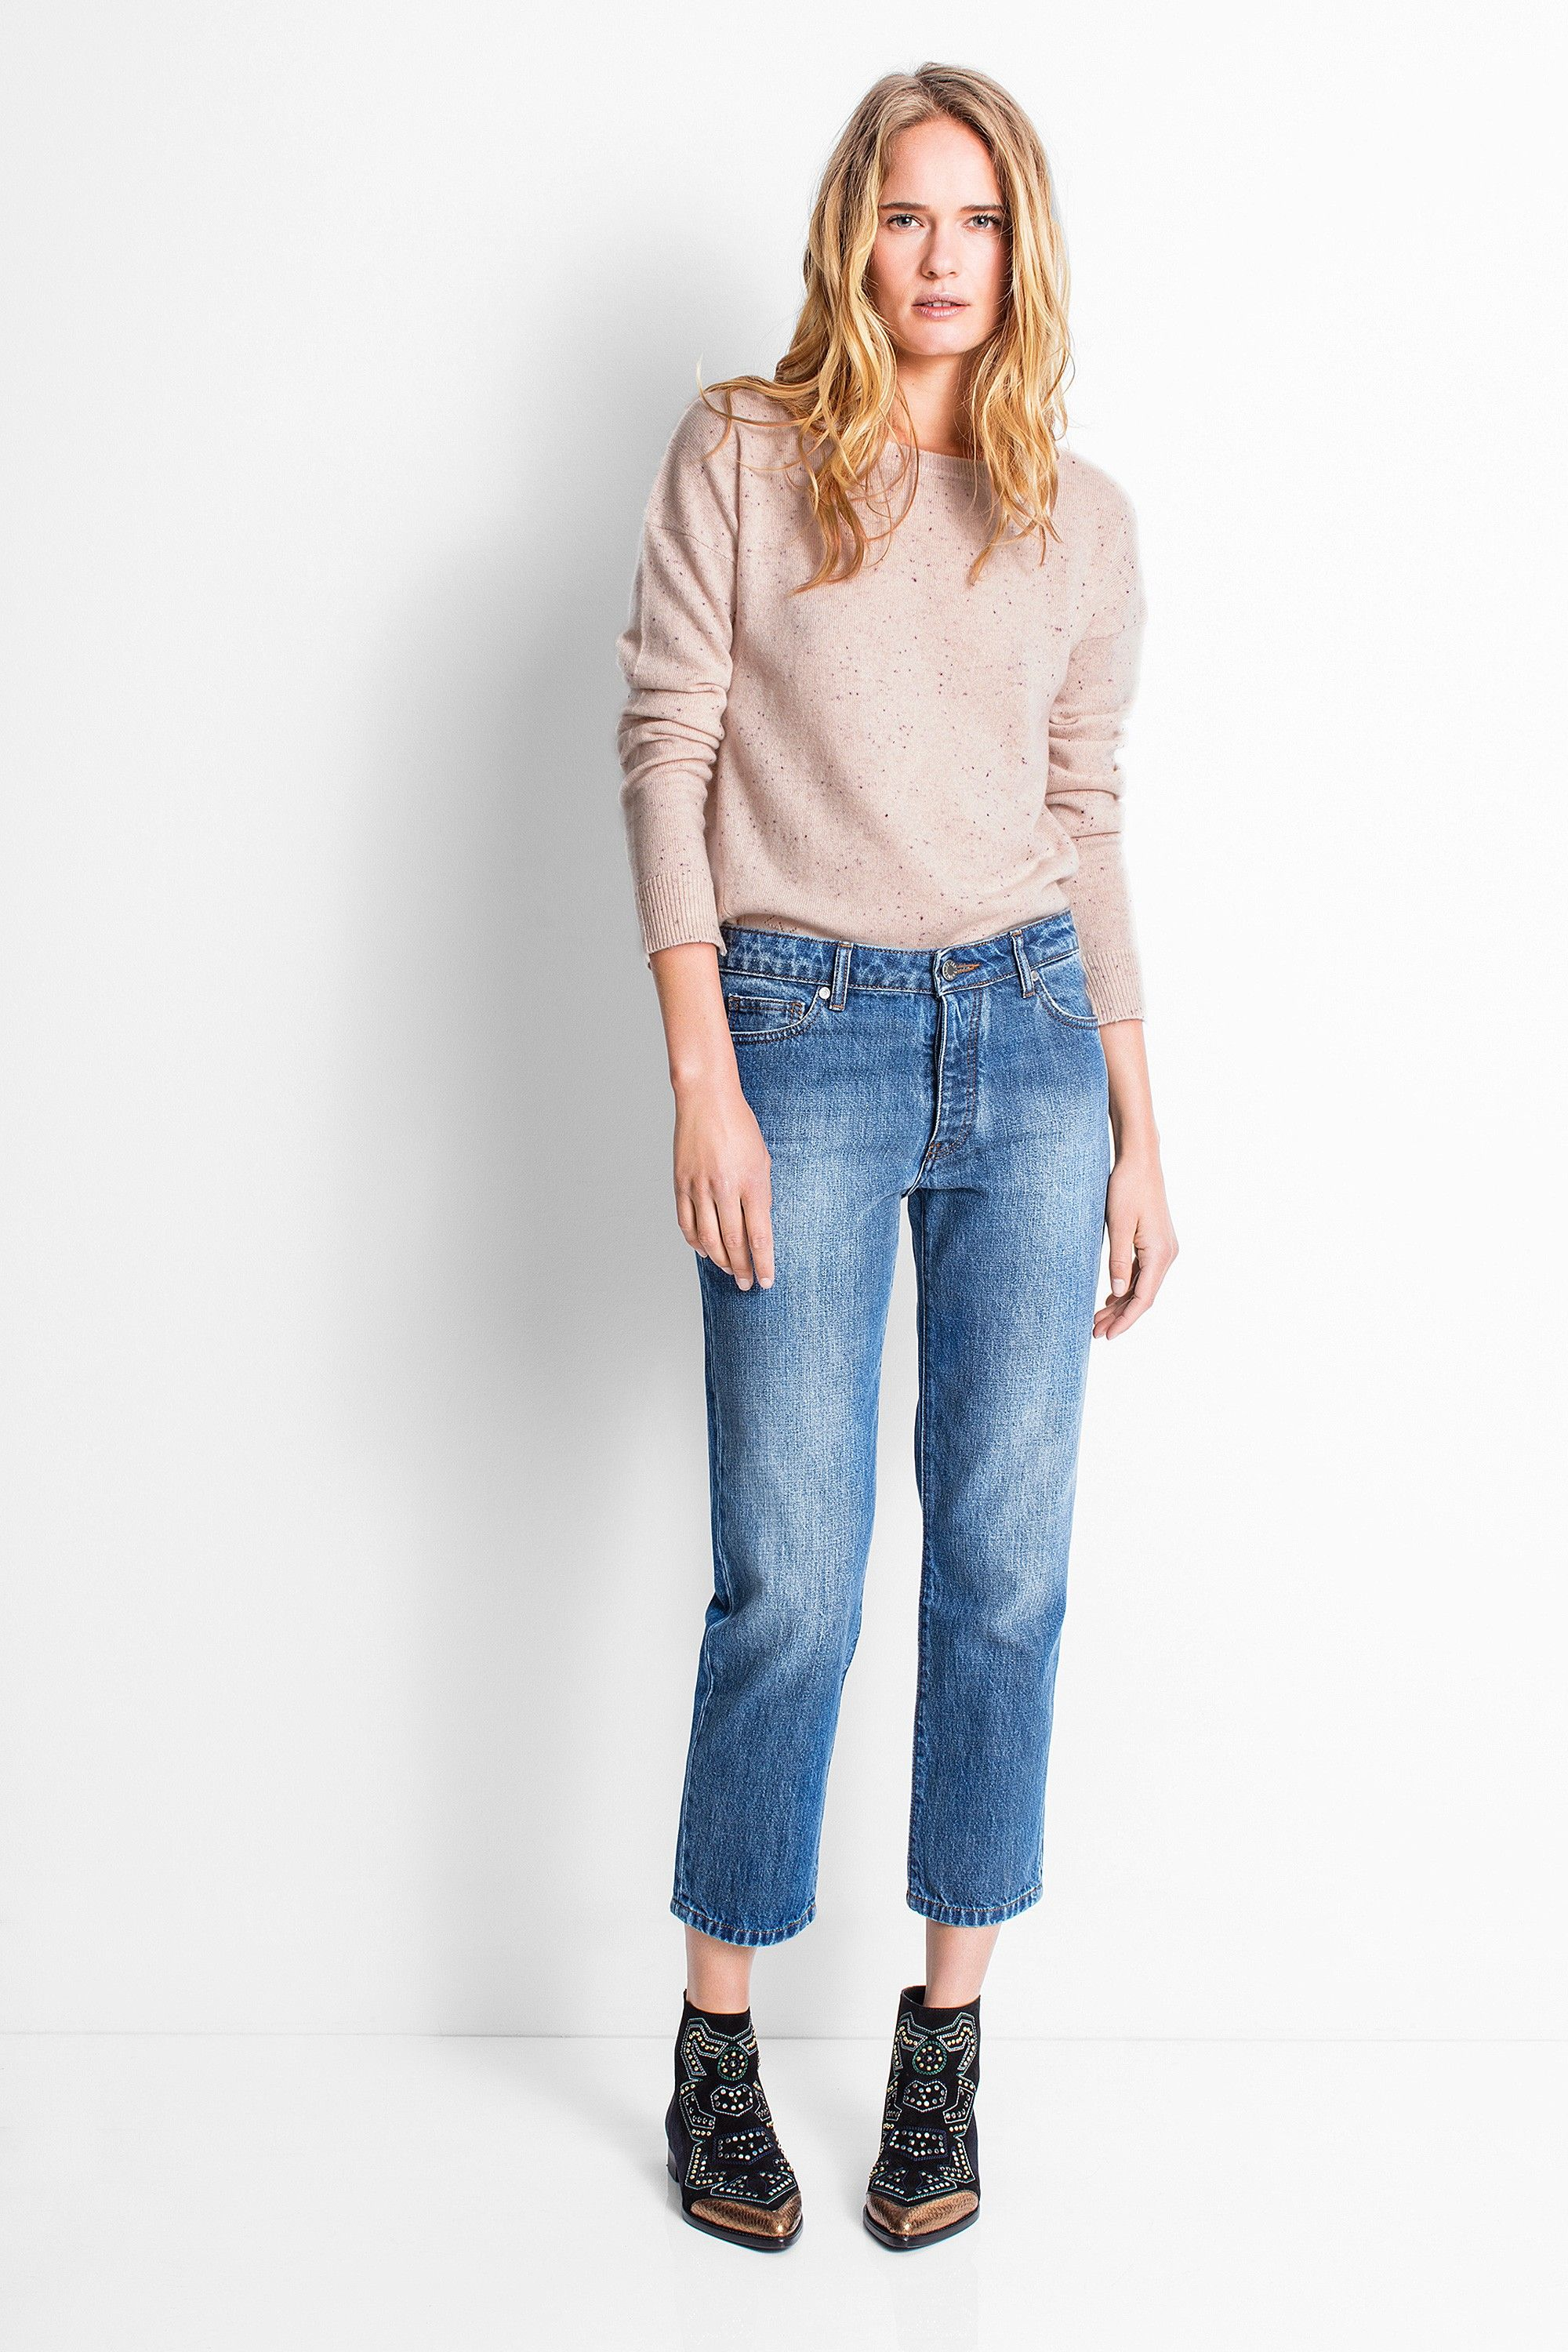 Zadig & Voltaire crew neck sweater, long sleeves, iridescent ...